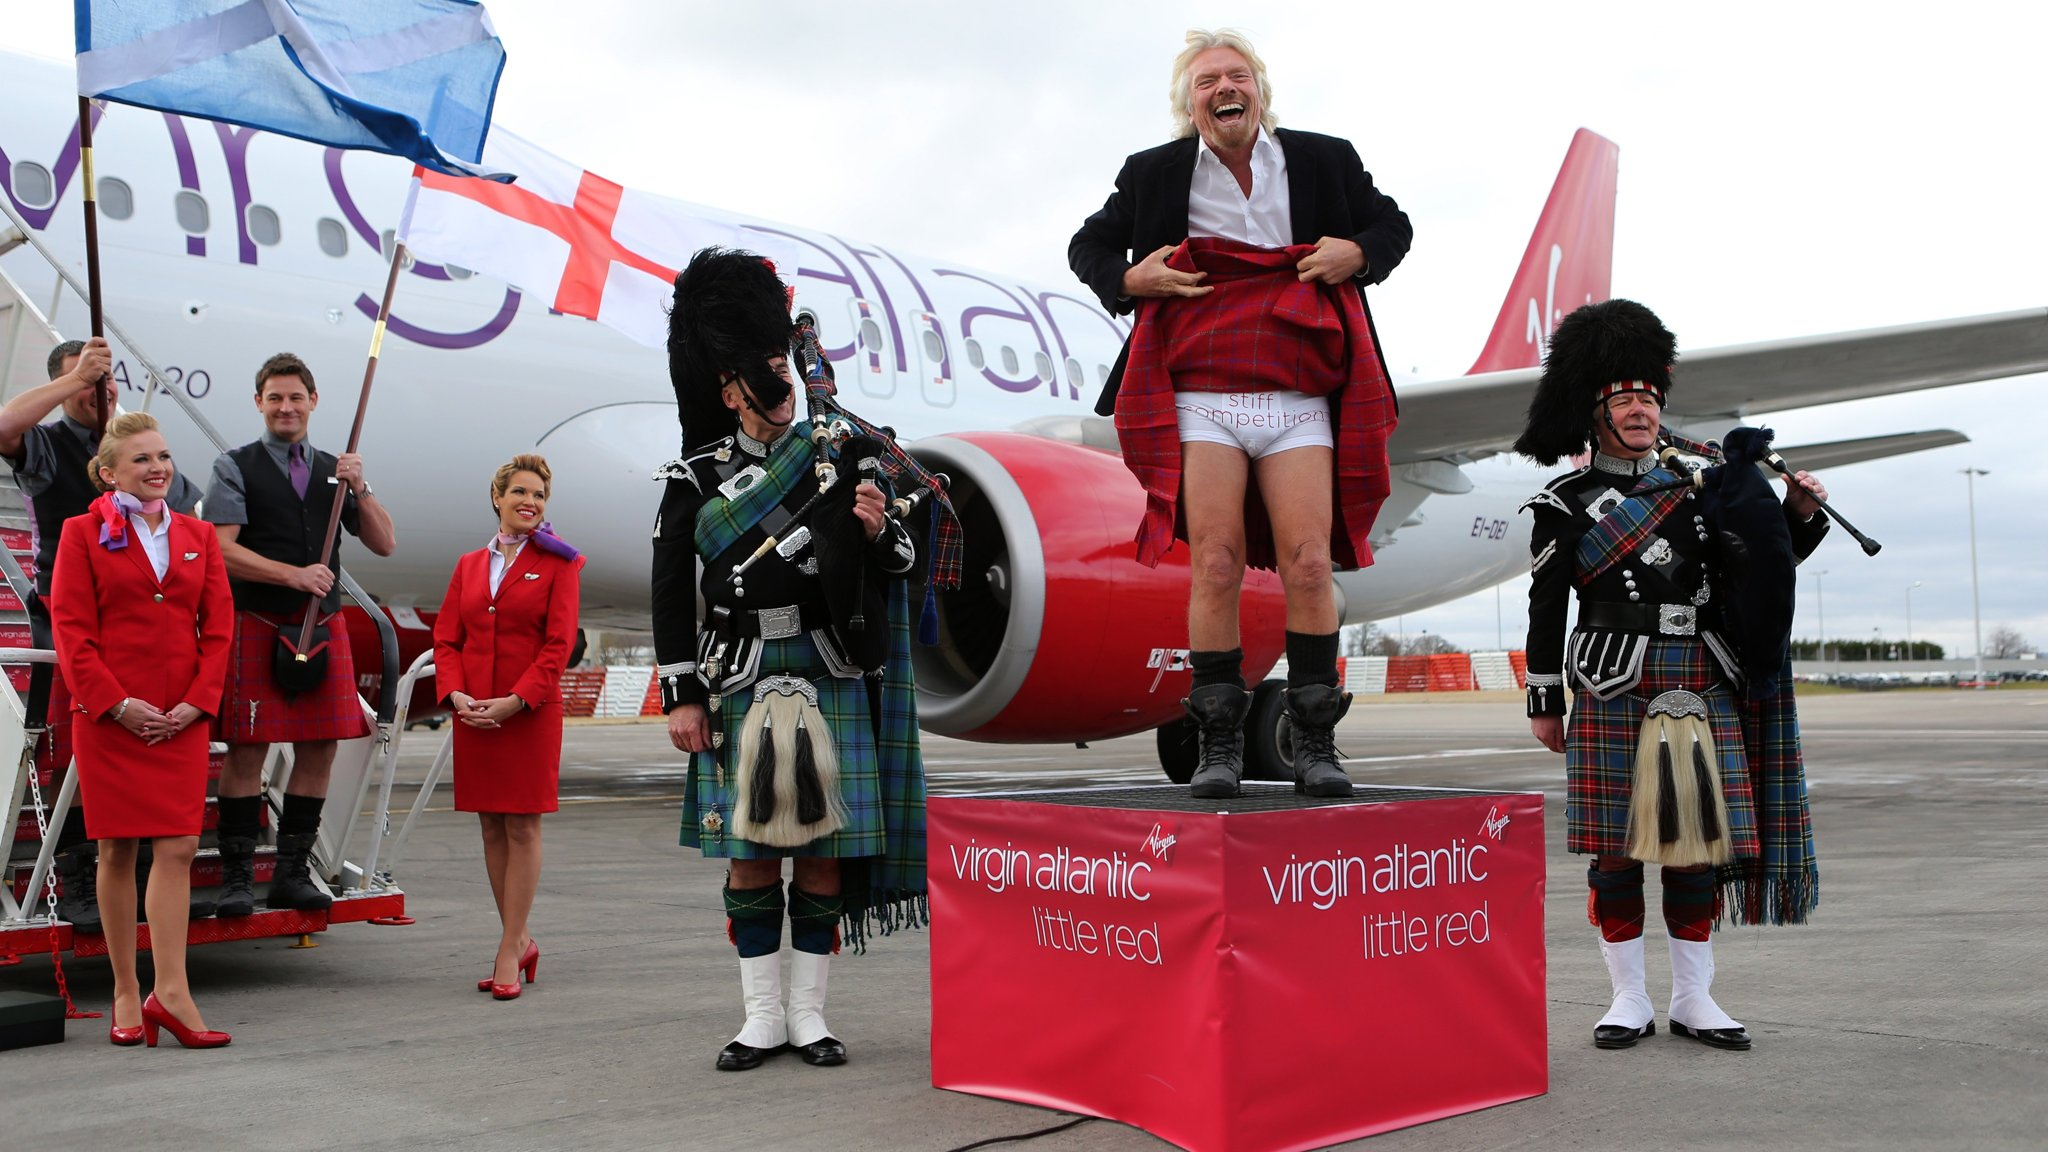 Branson gives up control of Virgin Atlantic in alliance